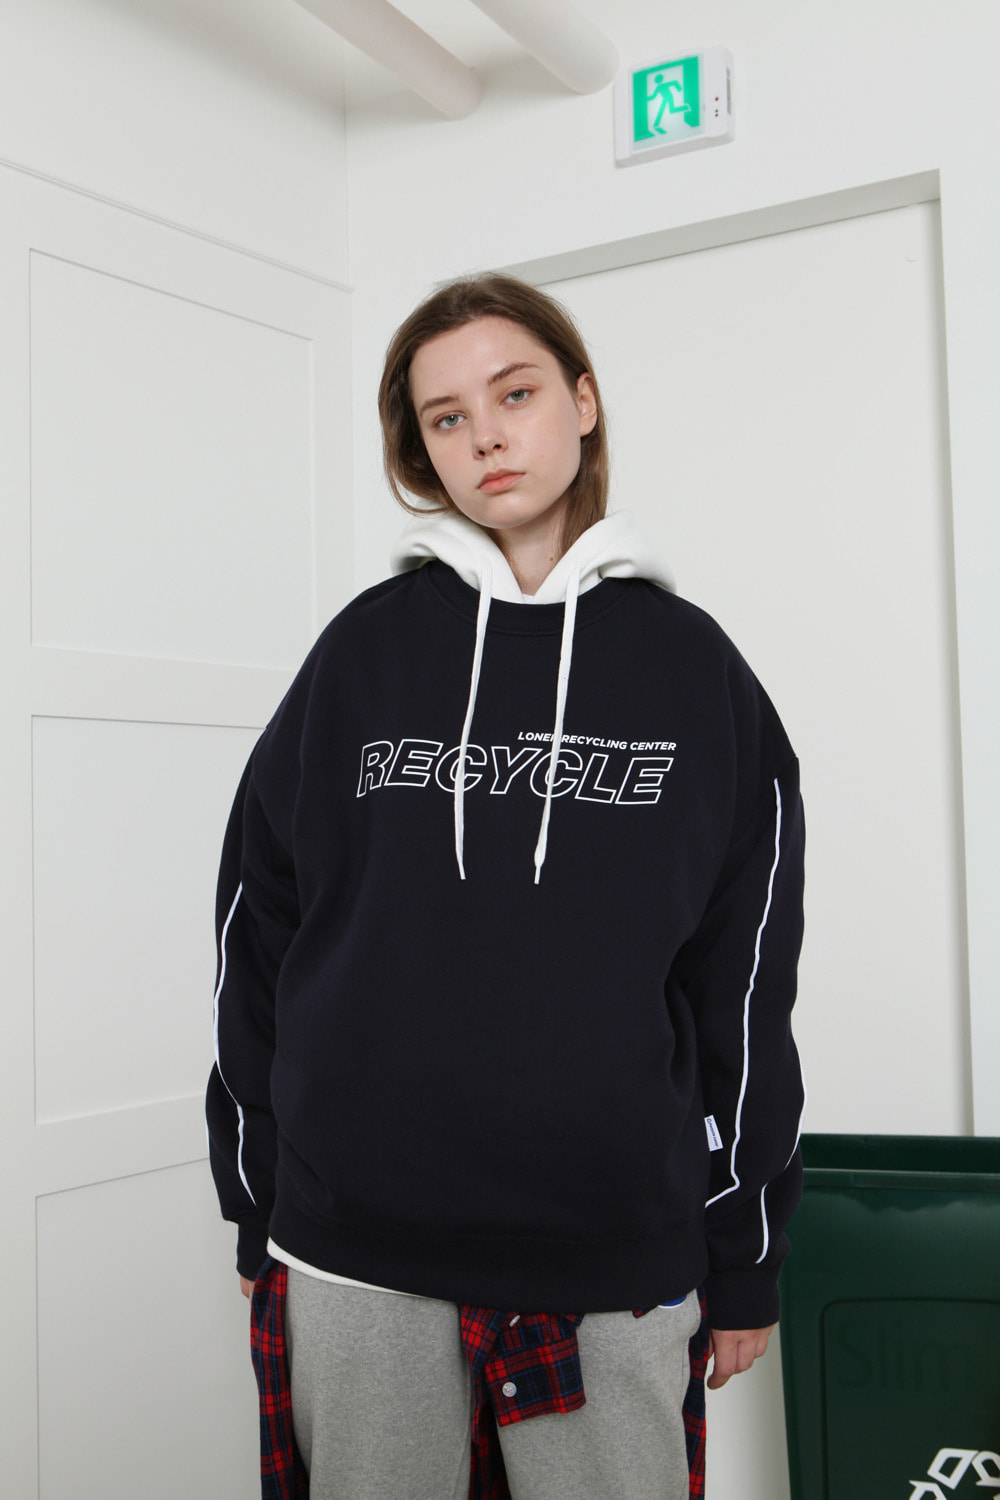 [LONER SEASON OFF SALE] Recycle center sweatshirt-navy (기간한정 02.21 - 02.27)